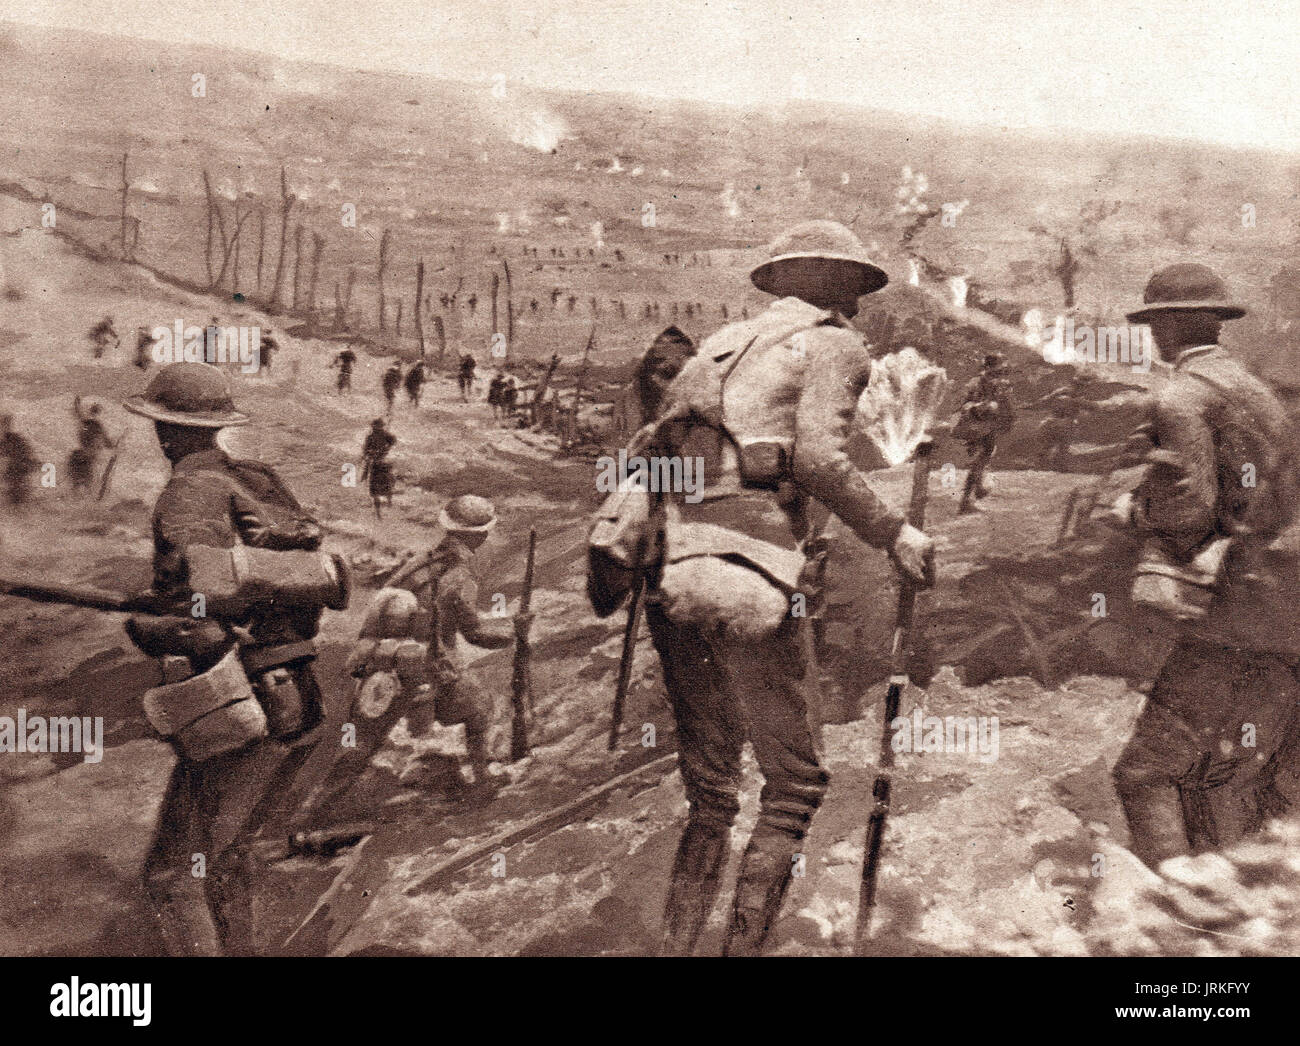 British infantry advancing at Battle of Cambrai 1918 - Stock Image